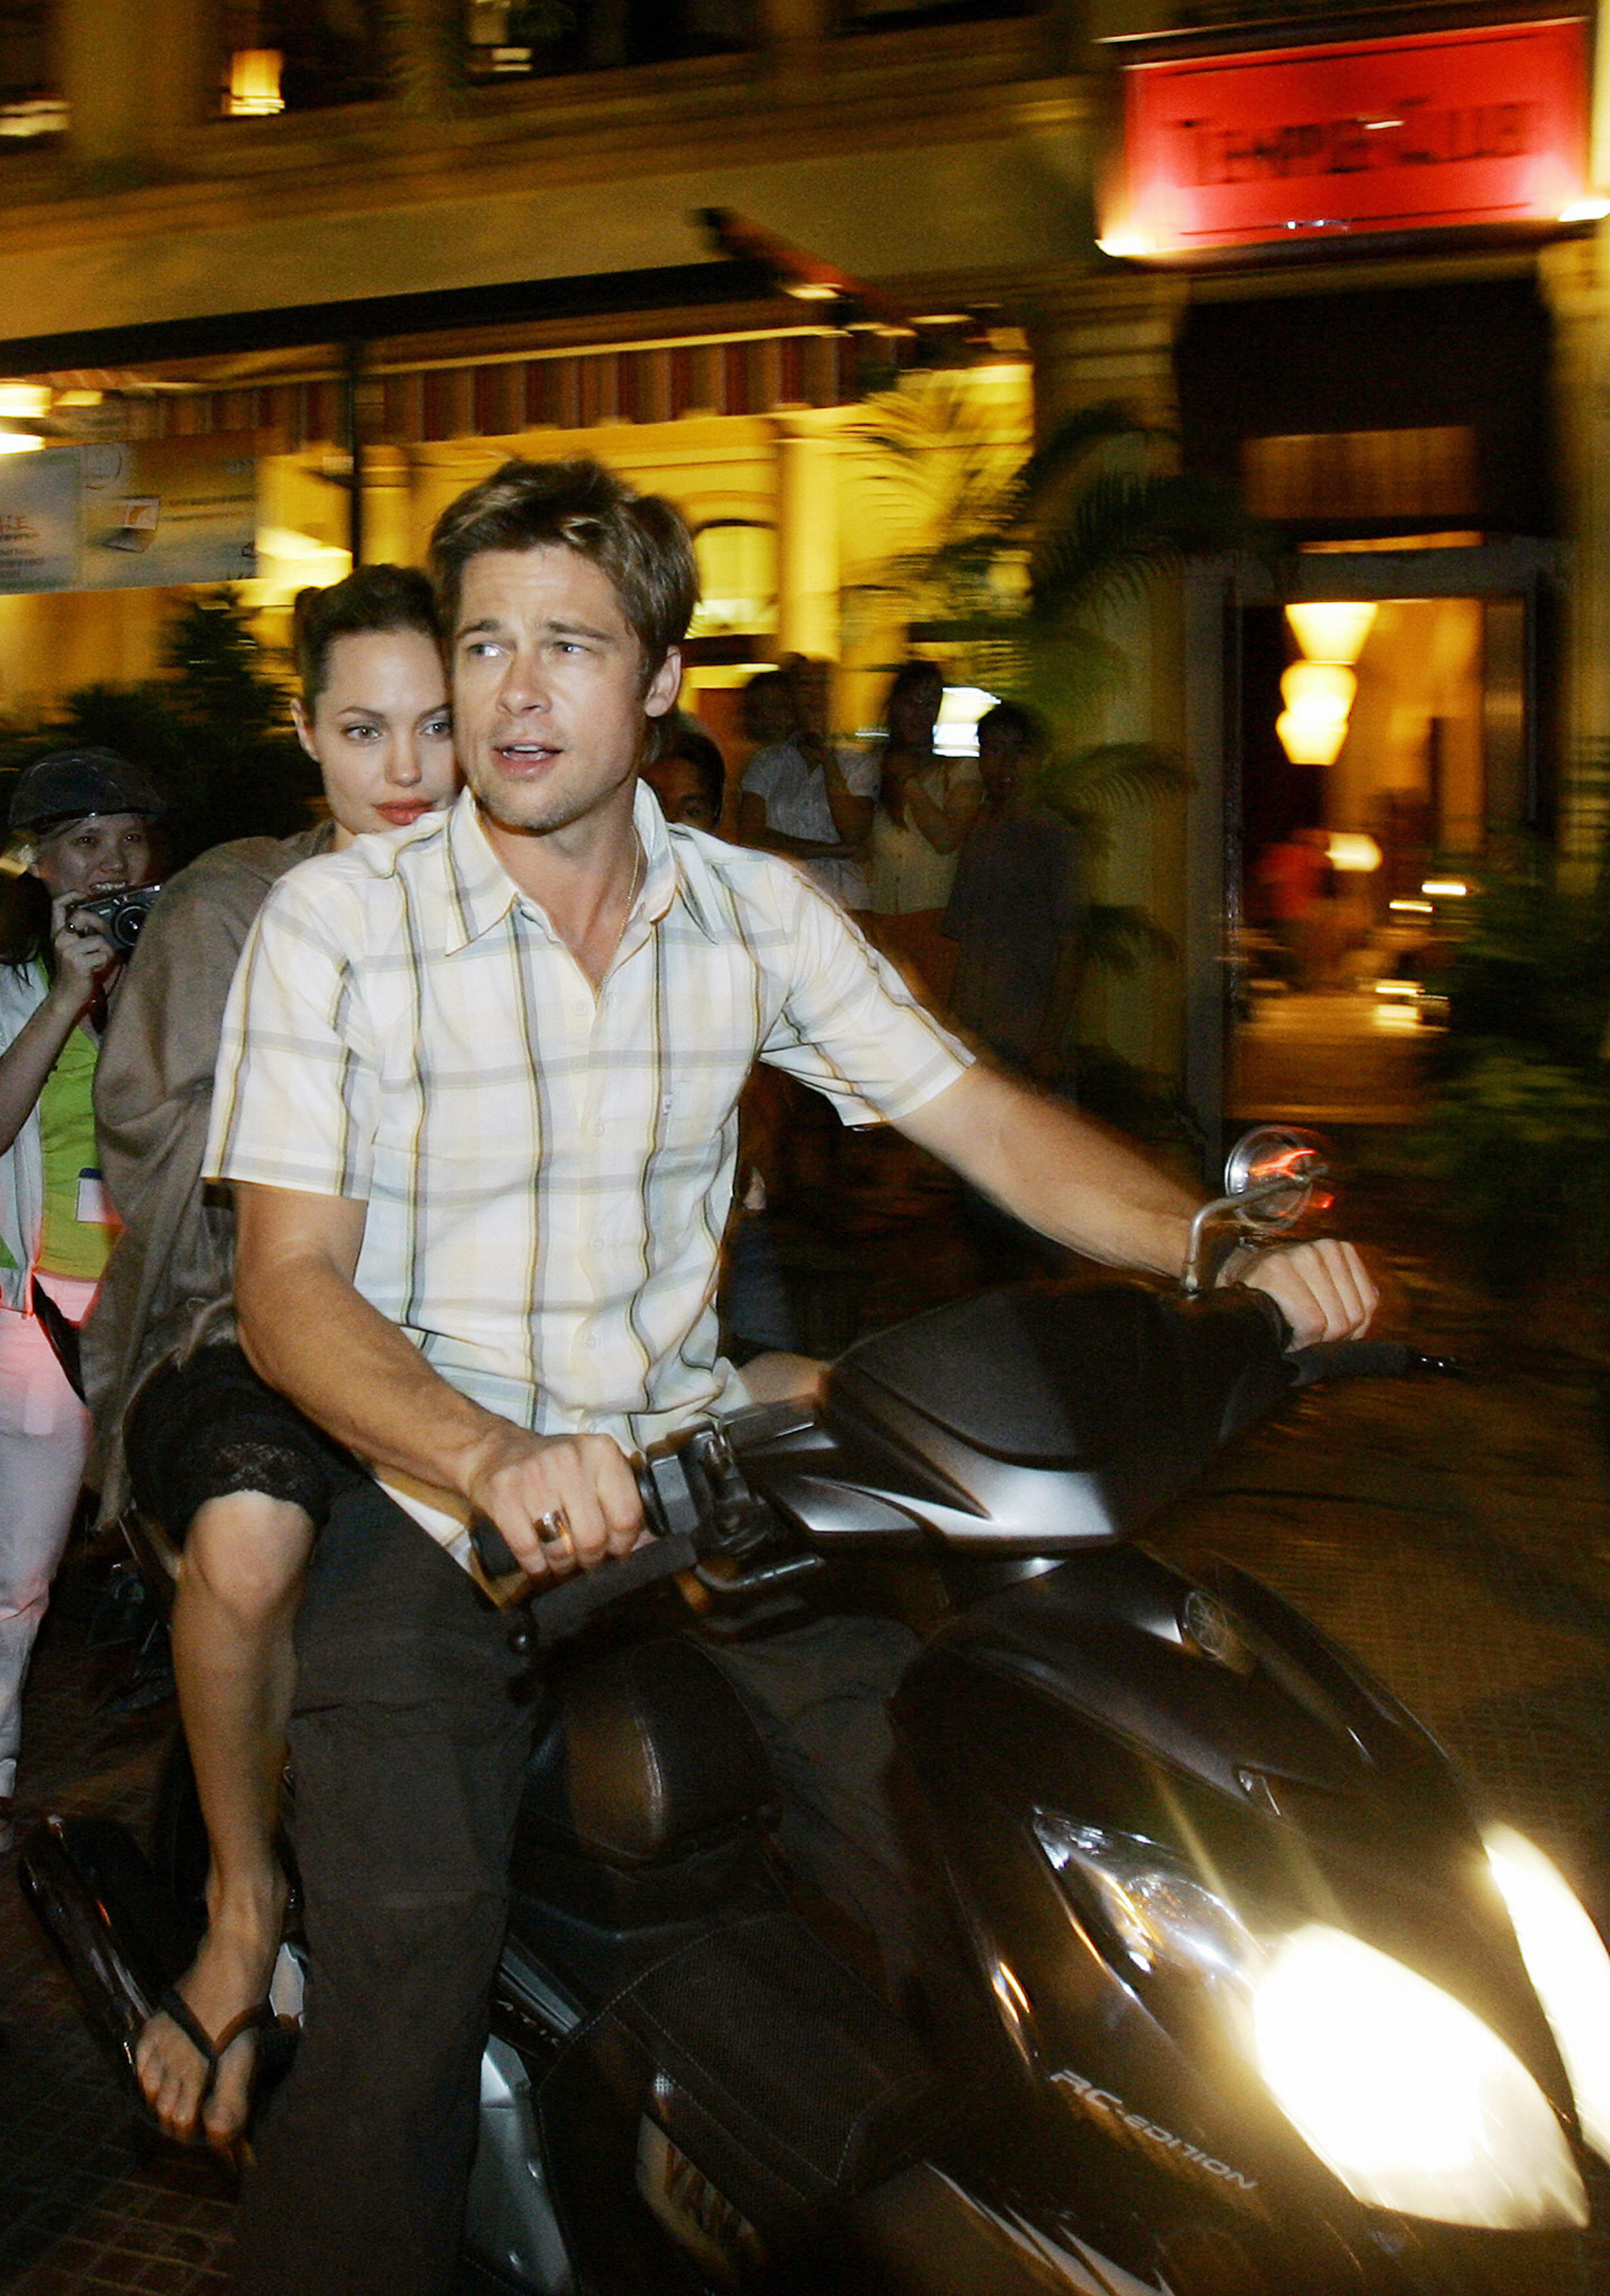 Ho Chi Minh City, VIET NAM:  Hollywood stars Brad Pitt and his partner Angelina Jolie leave the Temple Club restaurant where